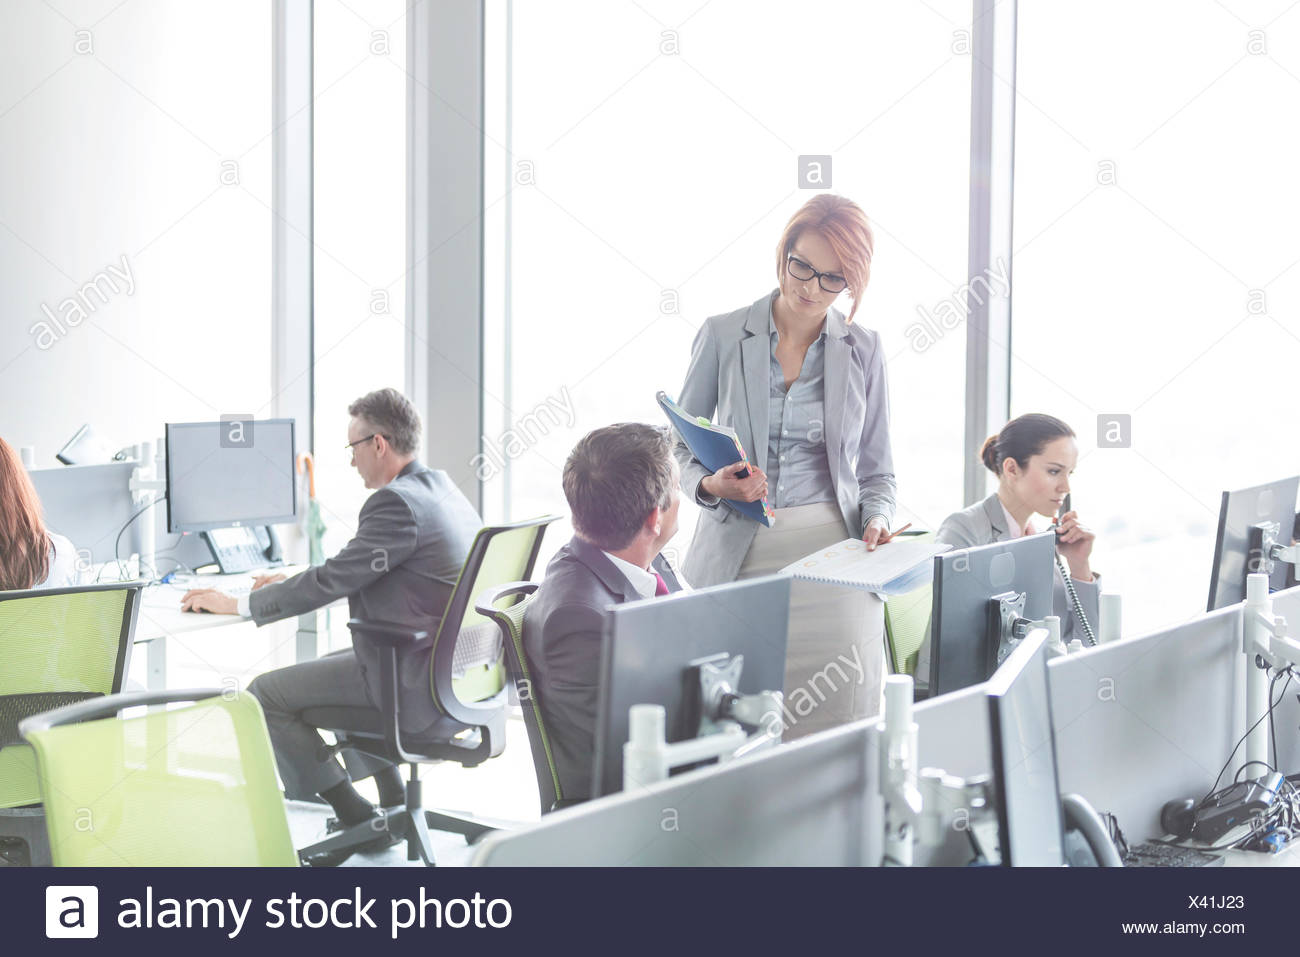 Open plan office stock photos open plan office stock images alamy